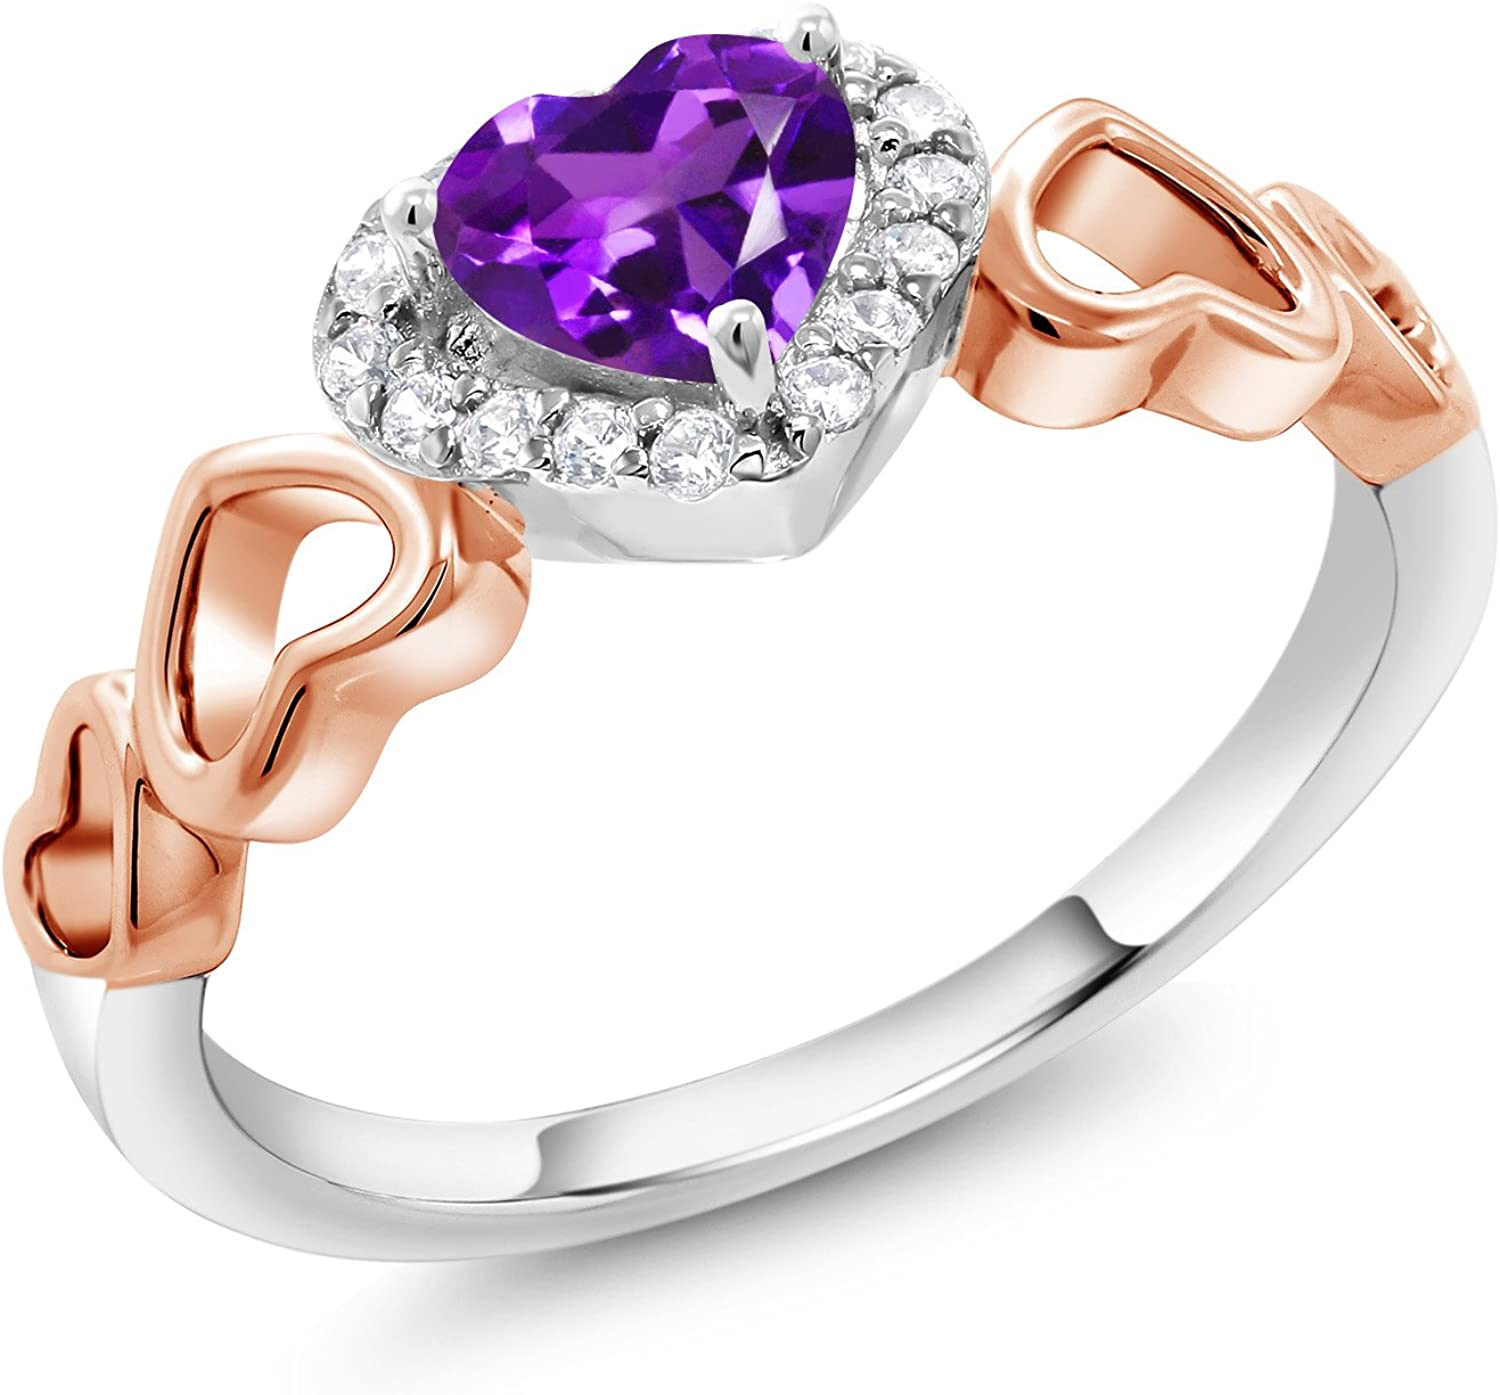 PRECIOUS 1.5 CT HEART AMETHYST PURPLE 925 STERLING SILVER RING SIZE 5-10